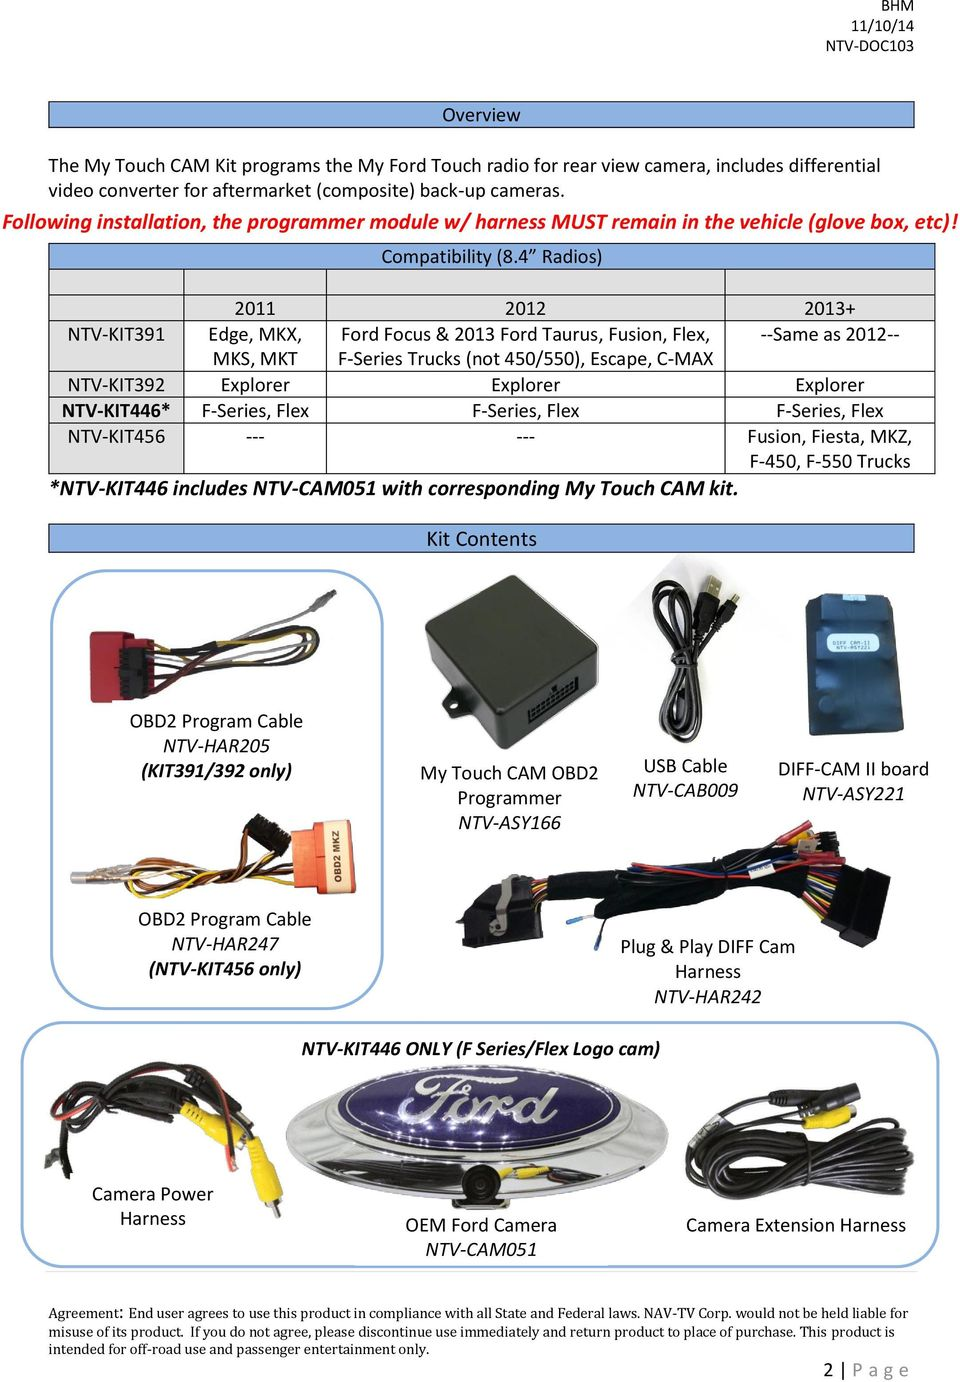 My Touch Cam Ford Rear Camera Integration Kit For 84 Wire Harness 4 Radios 2011 2012 2013 Ntv Kit391 Edge Mkx Focus